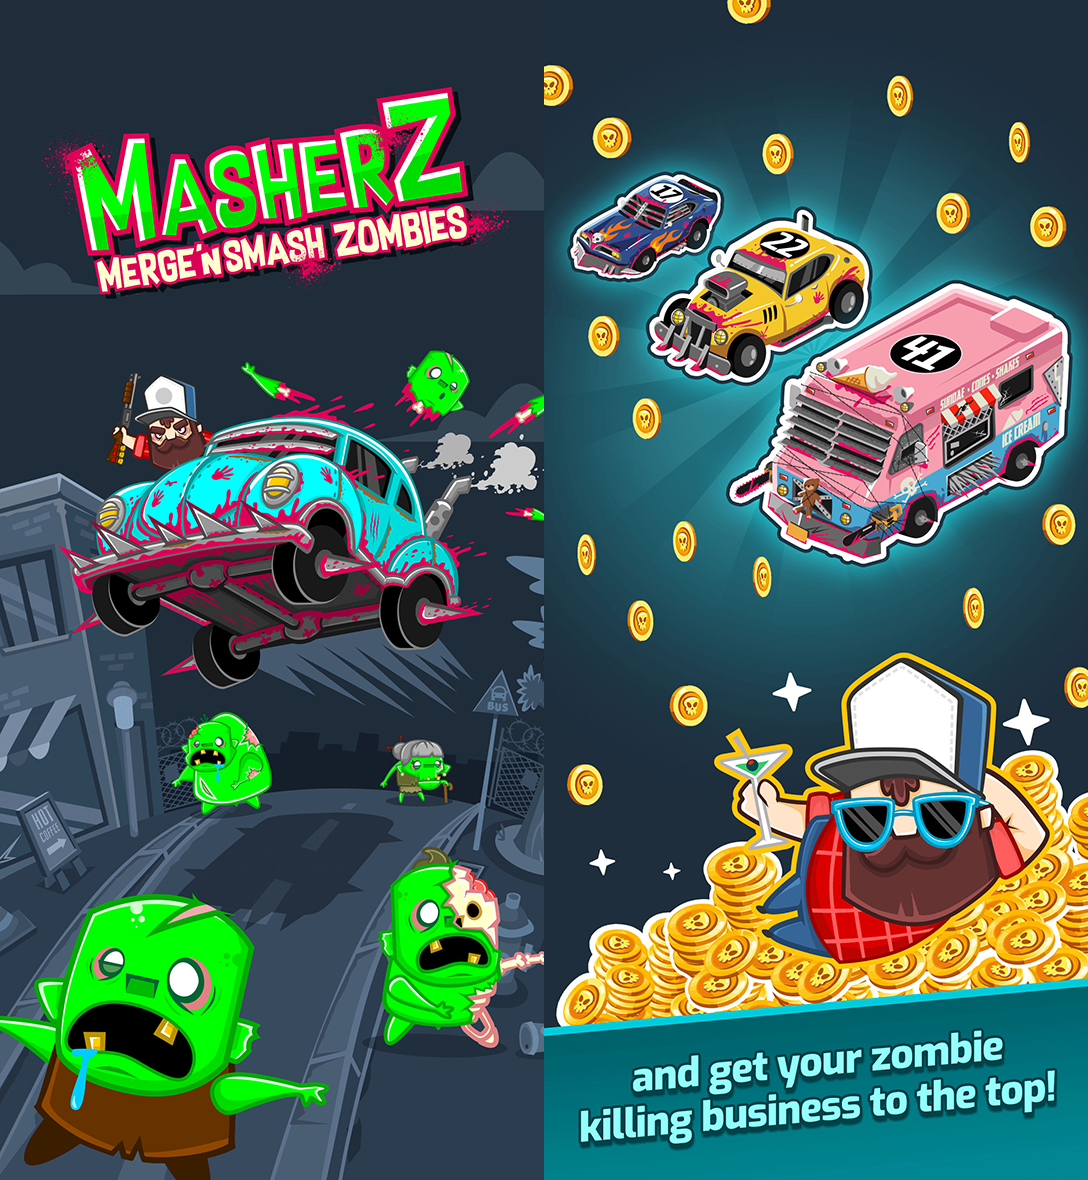 MasherZ: Merge'n Smash Zombies